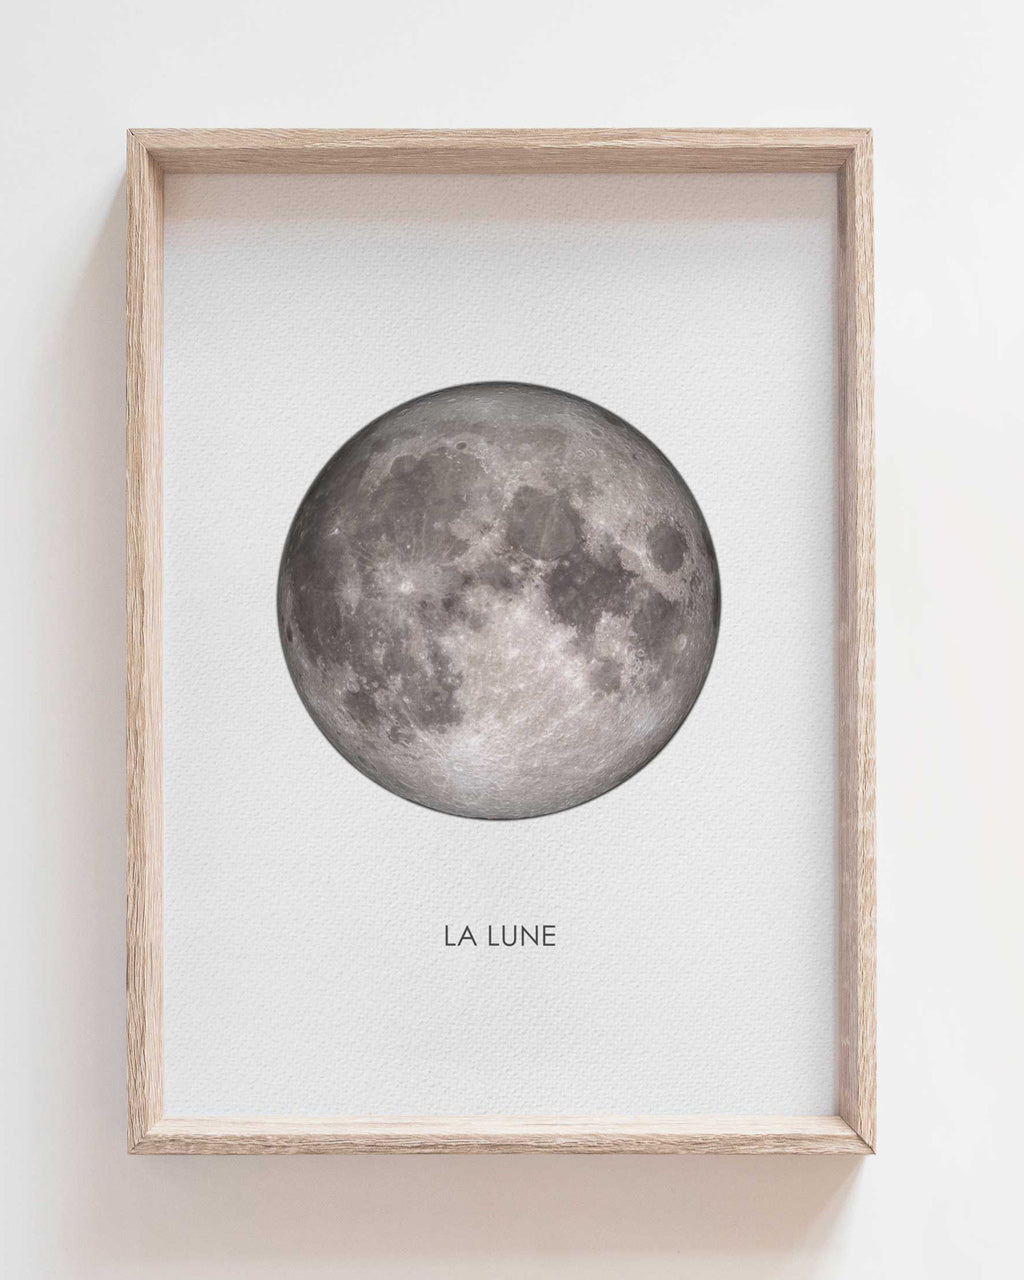 La Lune - print of original illustration on watercolour paper